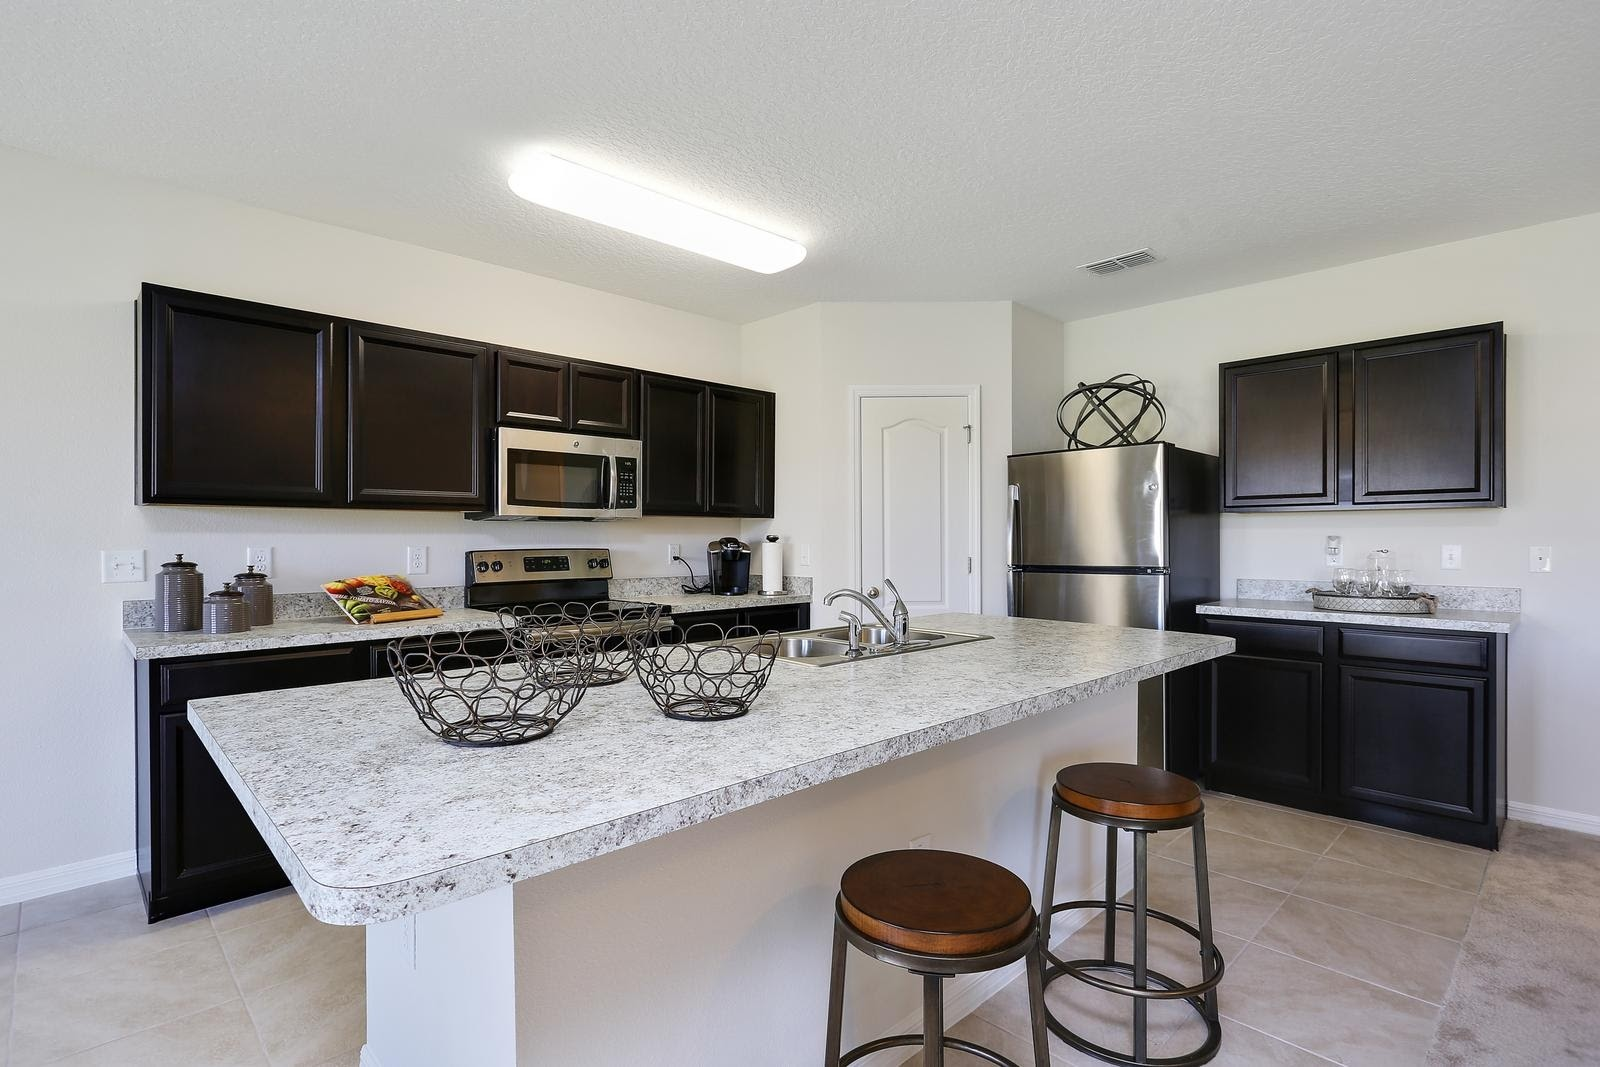 new homes for sale at highland meadows in davenport fl within the